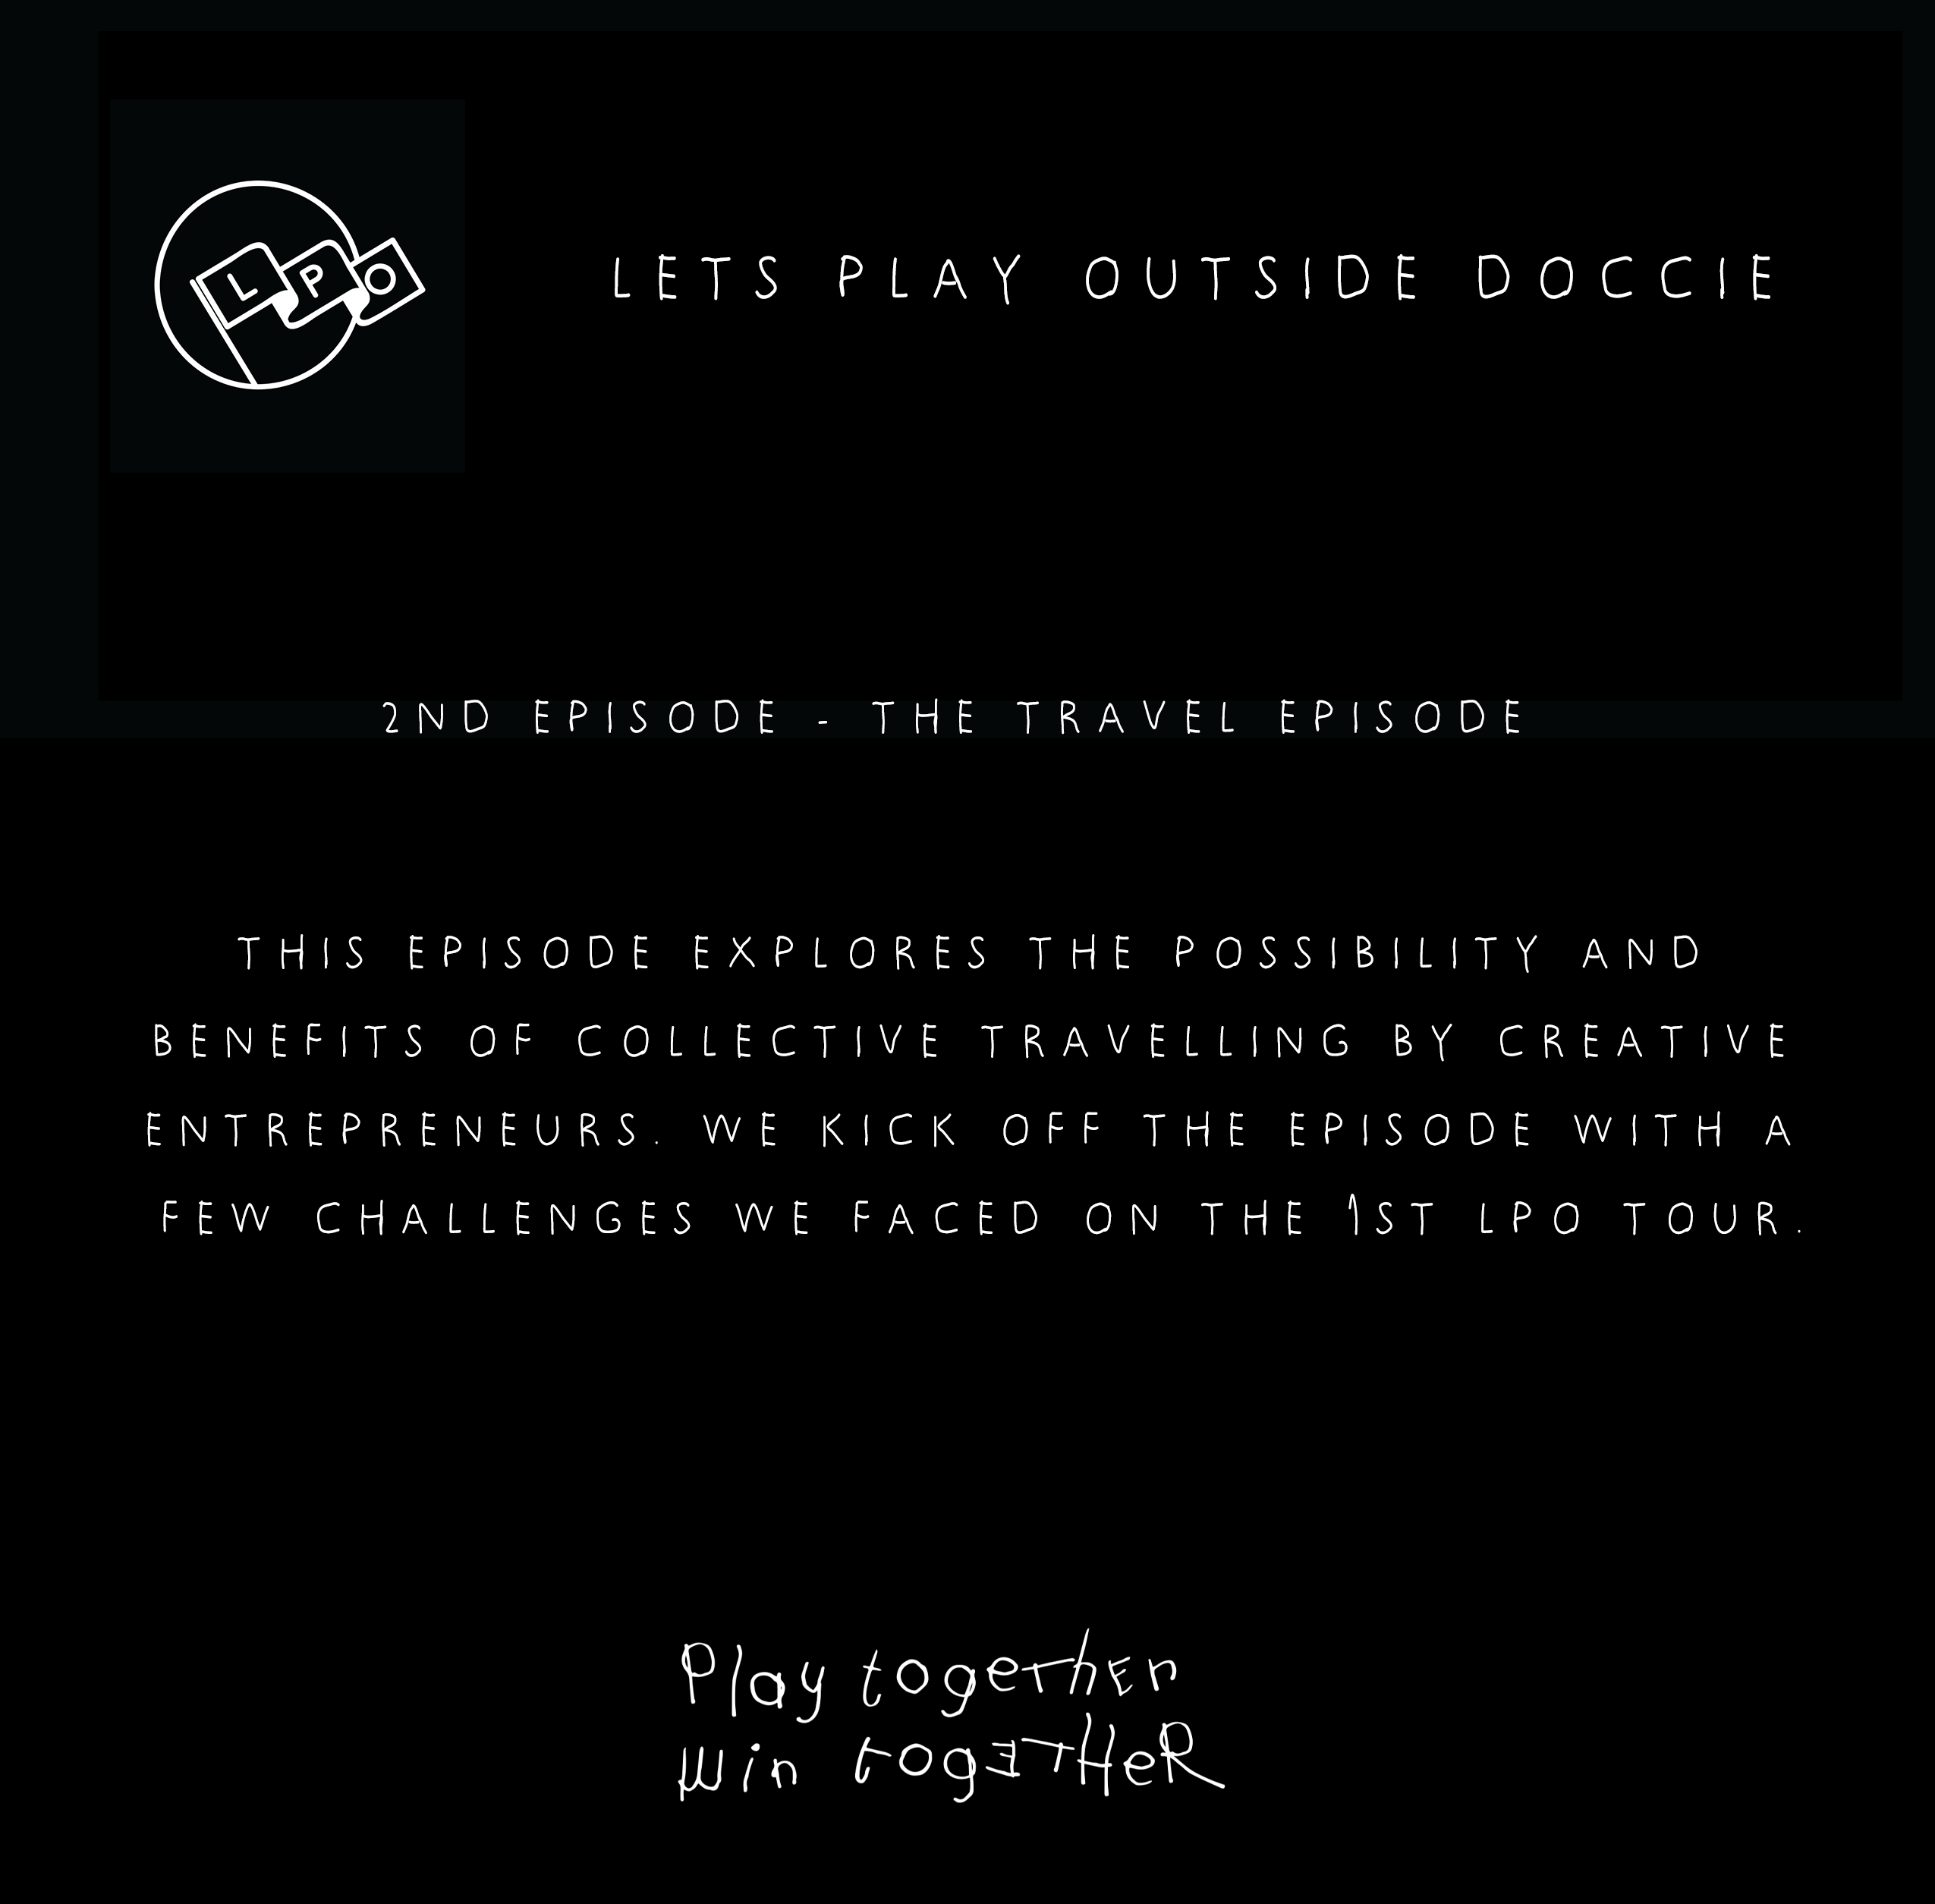 Watch The Lets Play Outside Documentary (Episode 2) LPO email 2nd episode